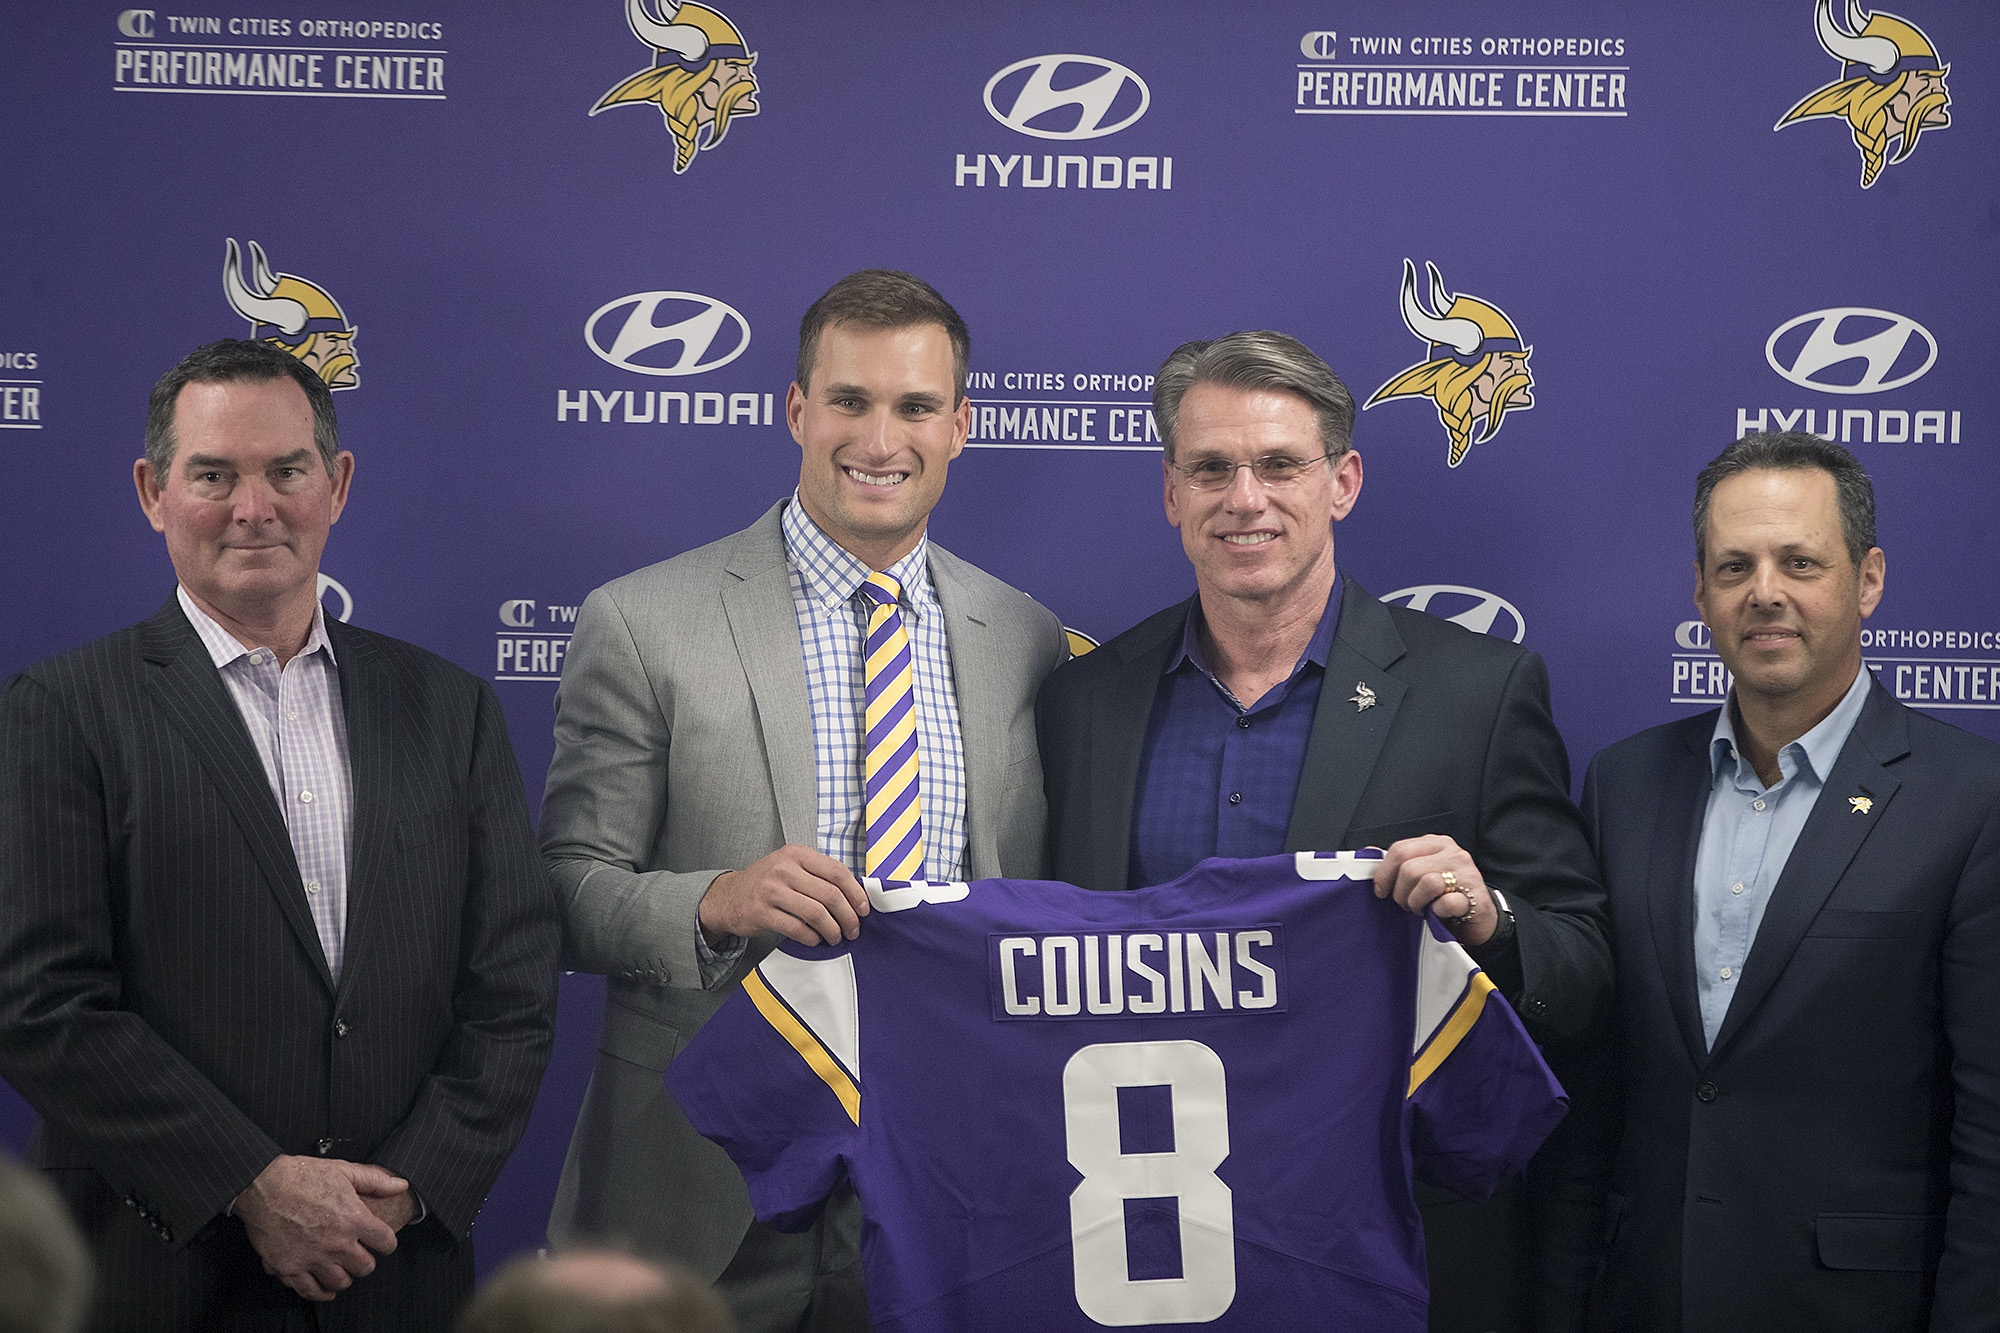 Vikings coach Mike Zimmer, quarterback Kirk Cousins, GM Rick Spielman and co-owner Mark Wilf after Cousins signed with the team in March 2018.